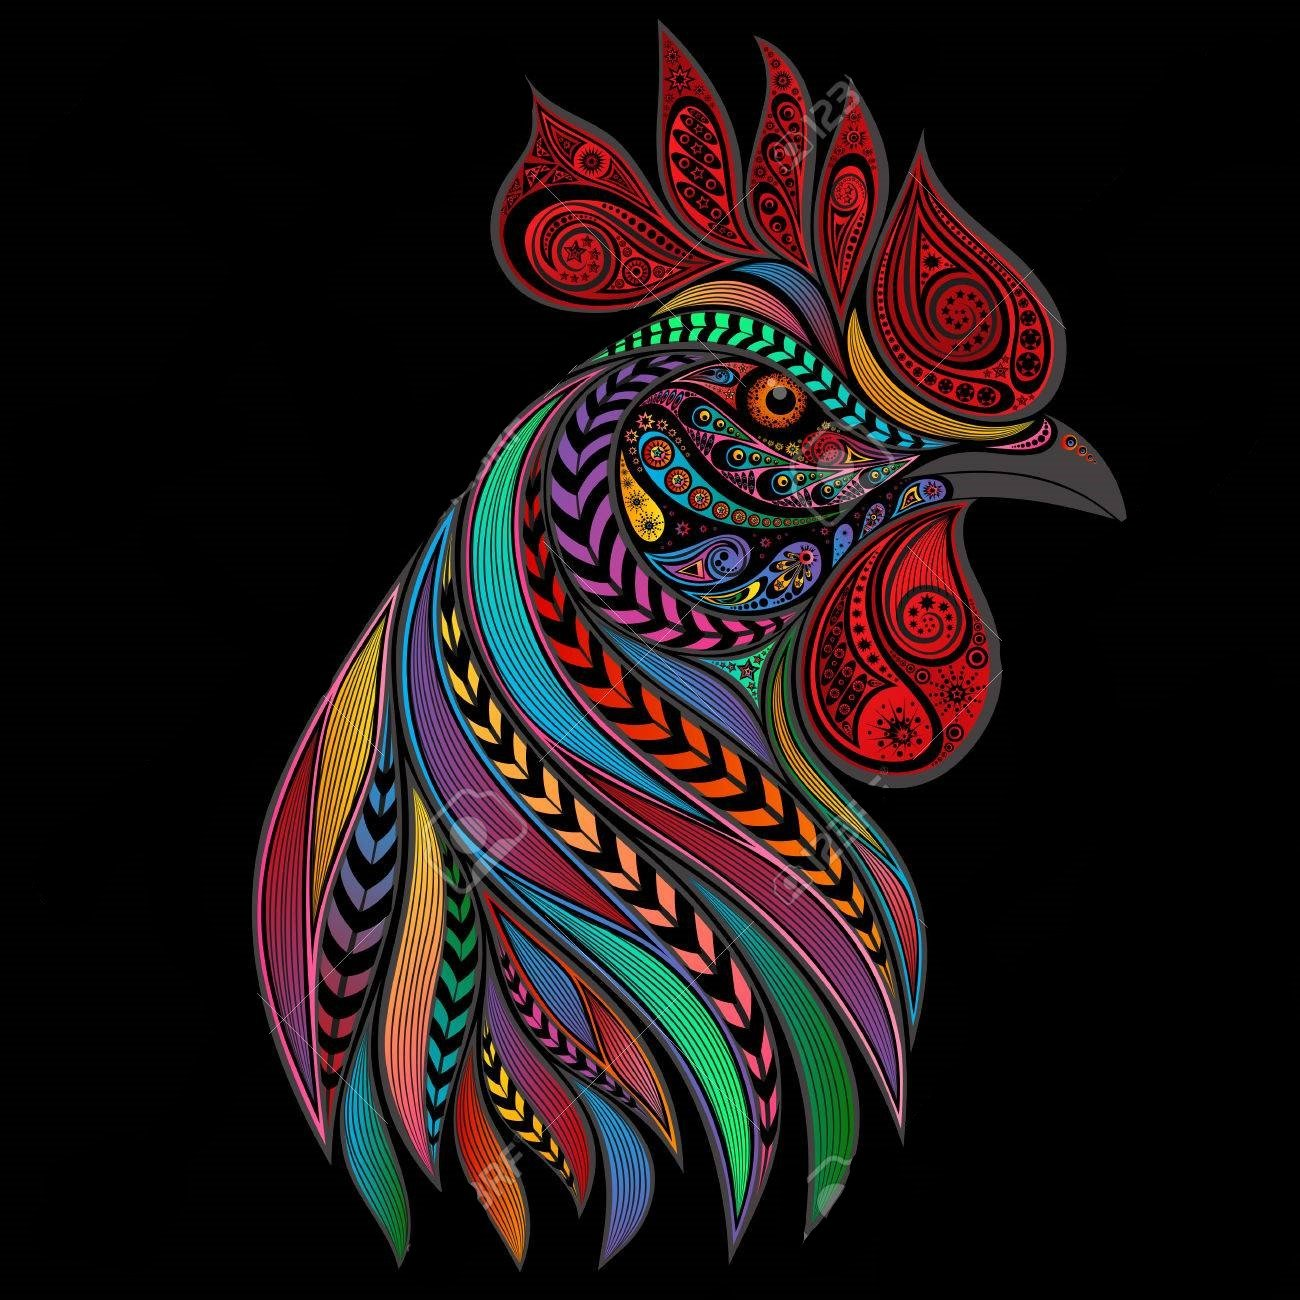 57157246-abstract-rooster-of-the-patterns-for-the-new-year-2017.jpg